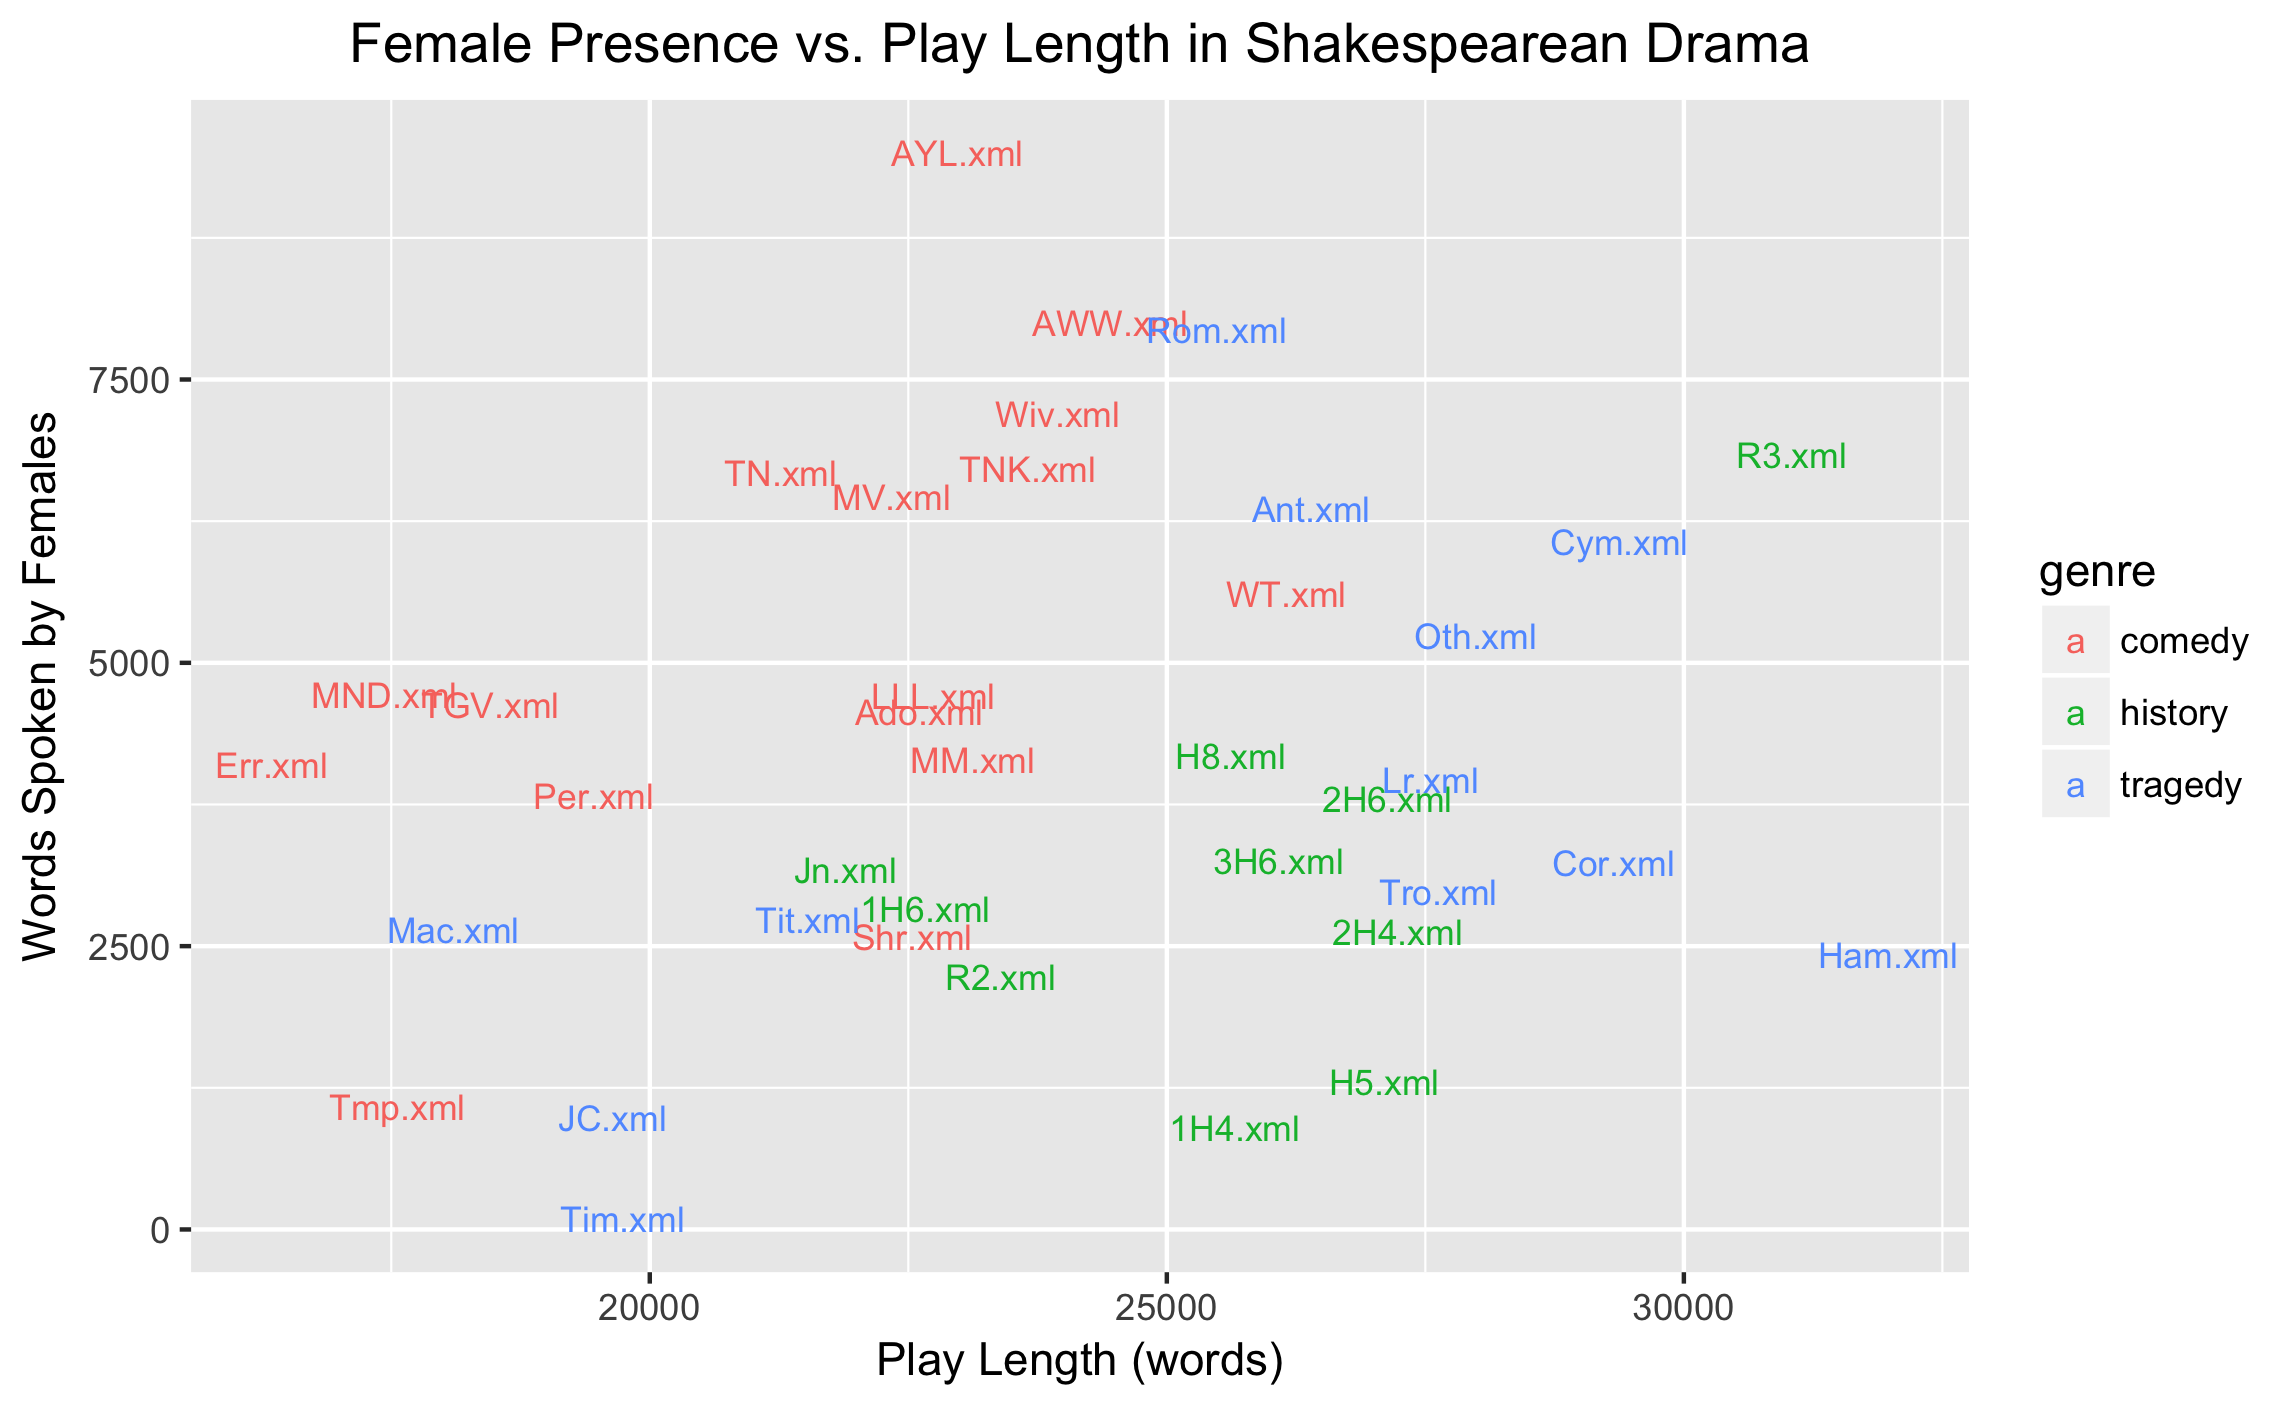 Visualization of the percent of lines spoken by women and play length of each Shakespearean play.